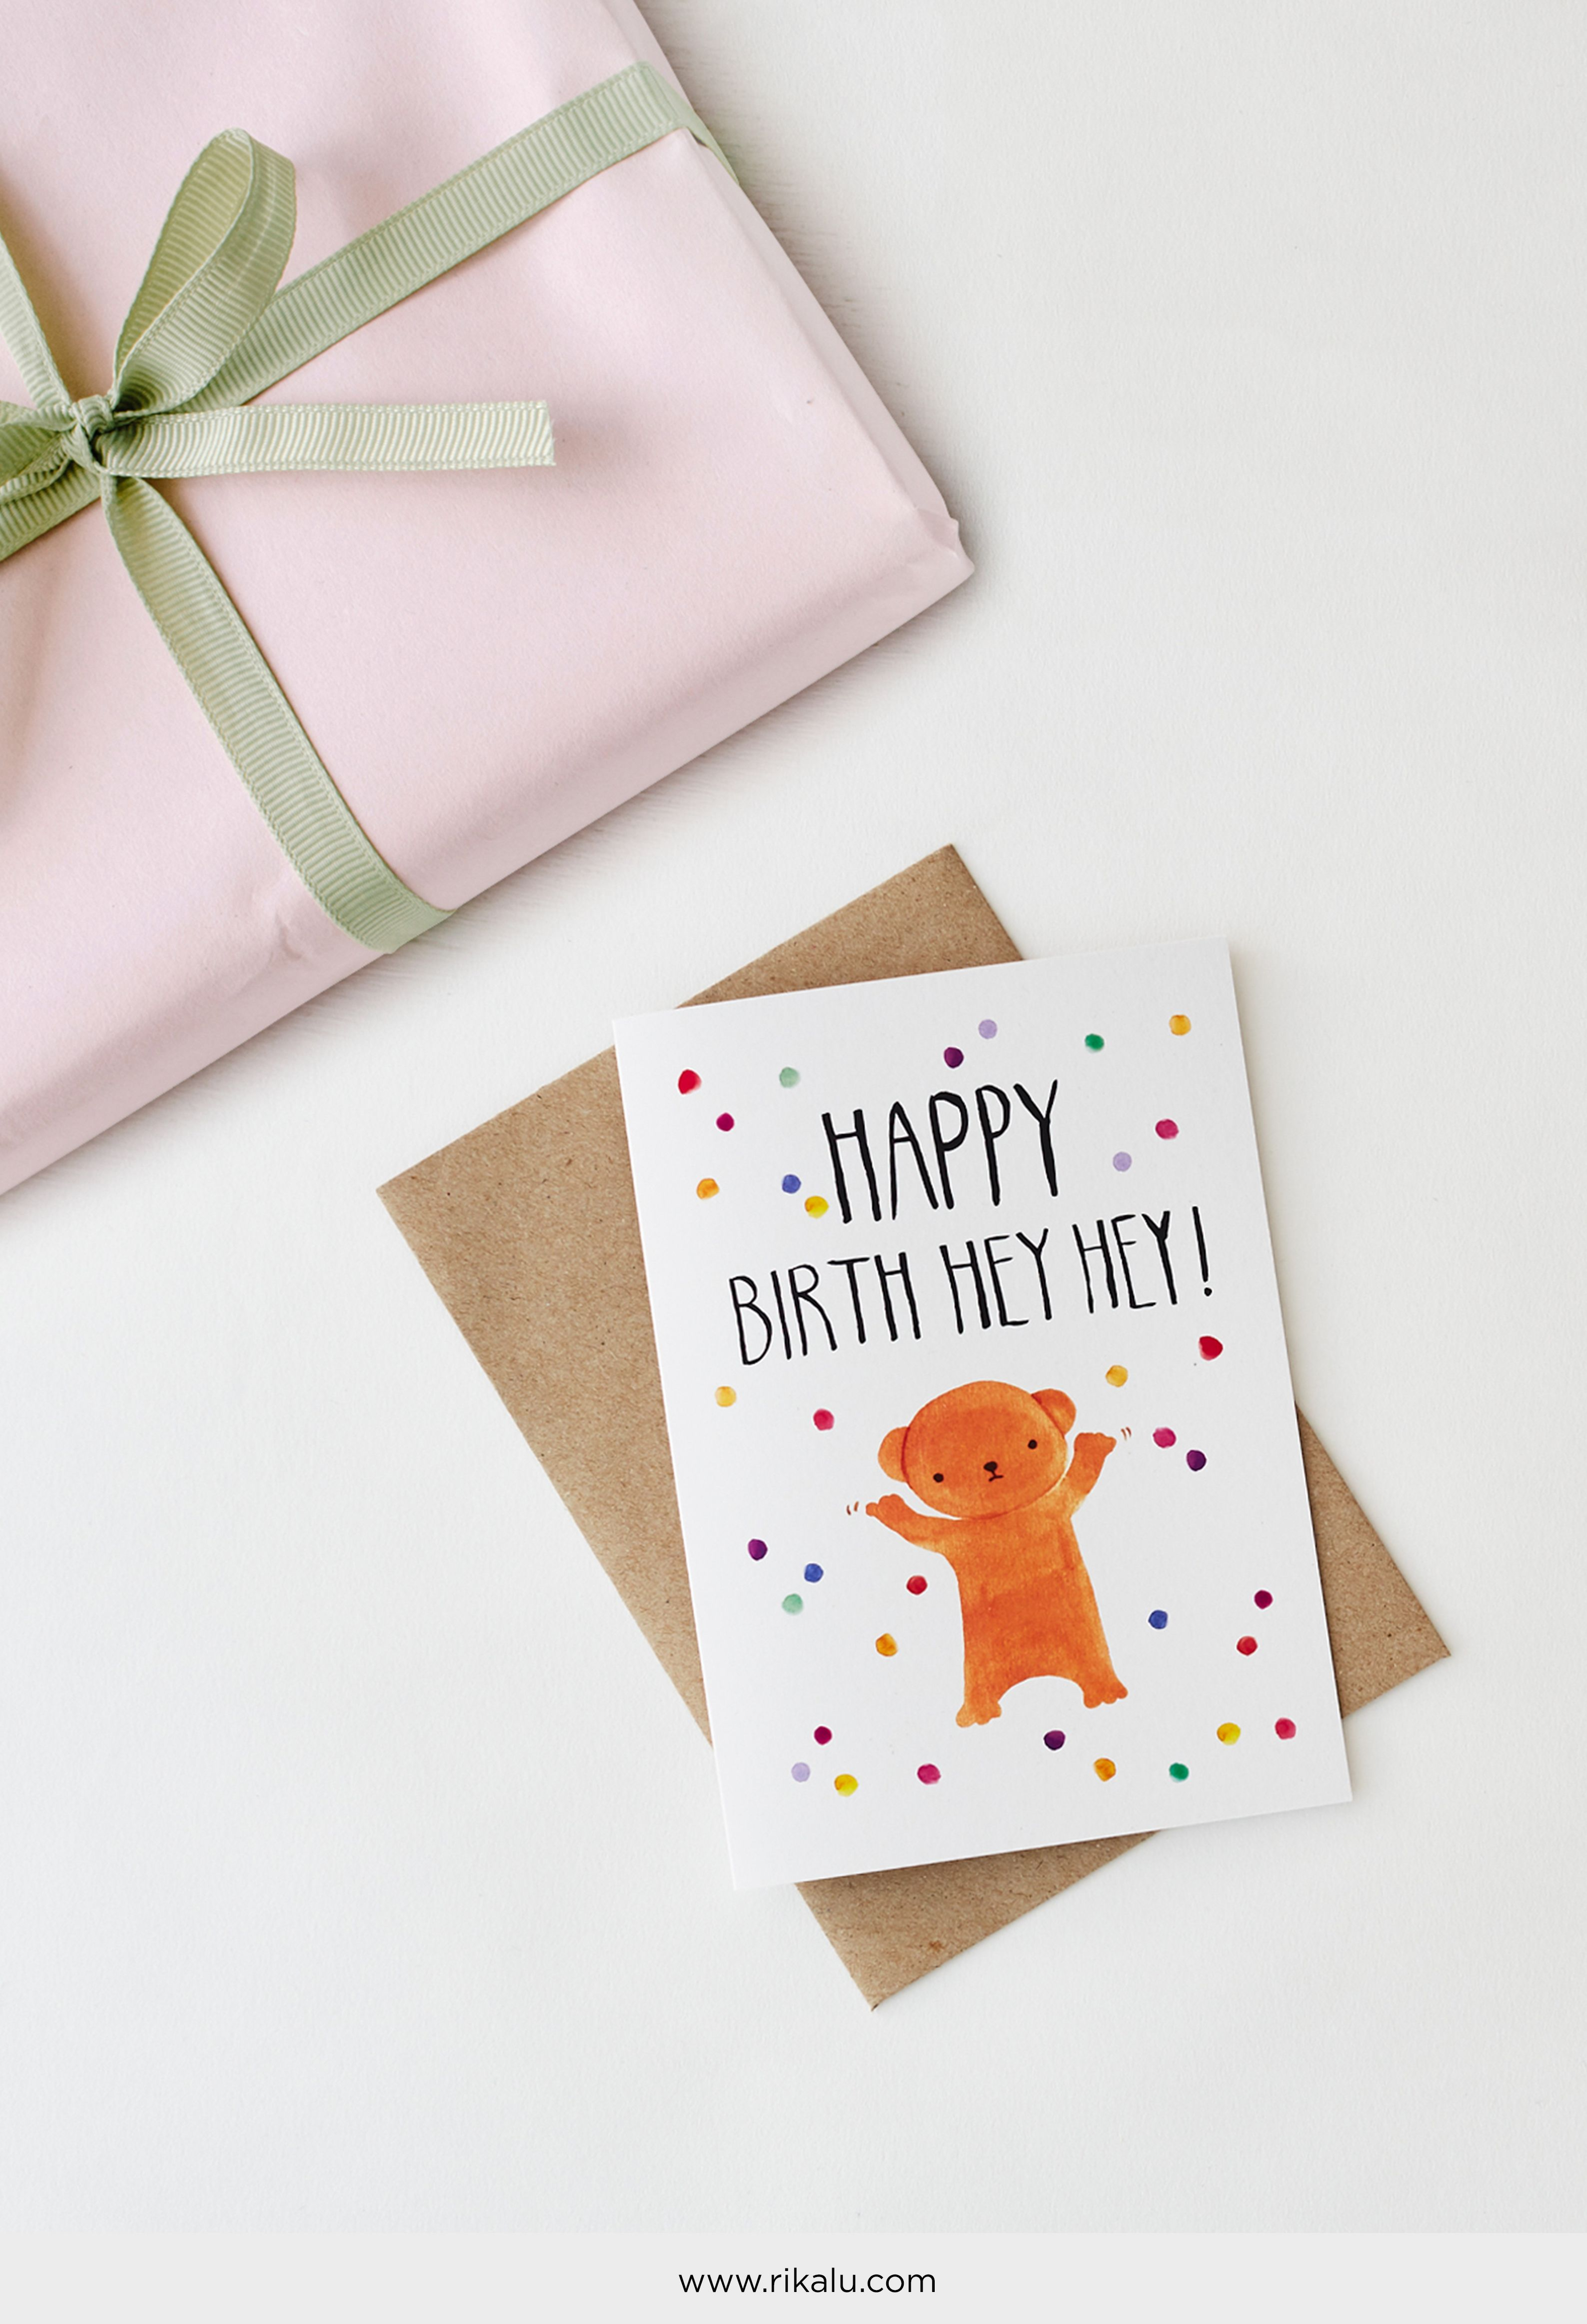 Happy Birth Hey Hey Original Art Greeting Cards Illustrated